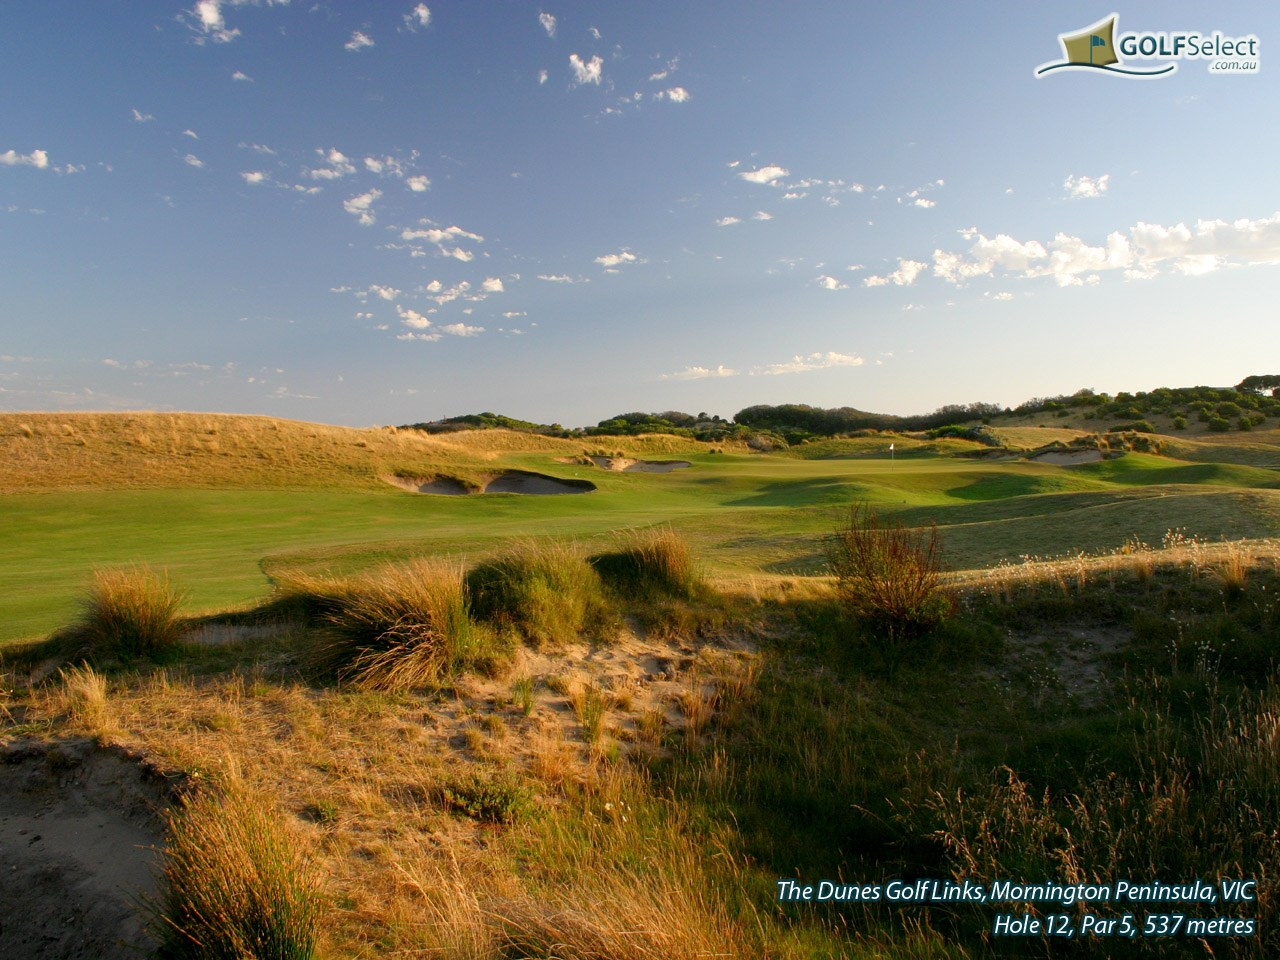 The Dunes Golf Links Hole 12, Par 5, 537 metres